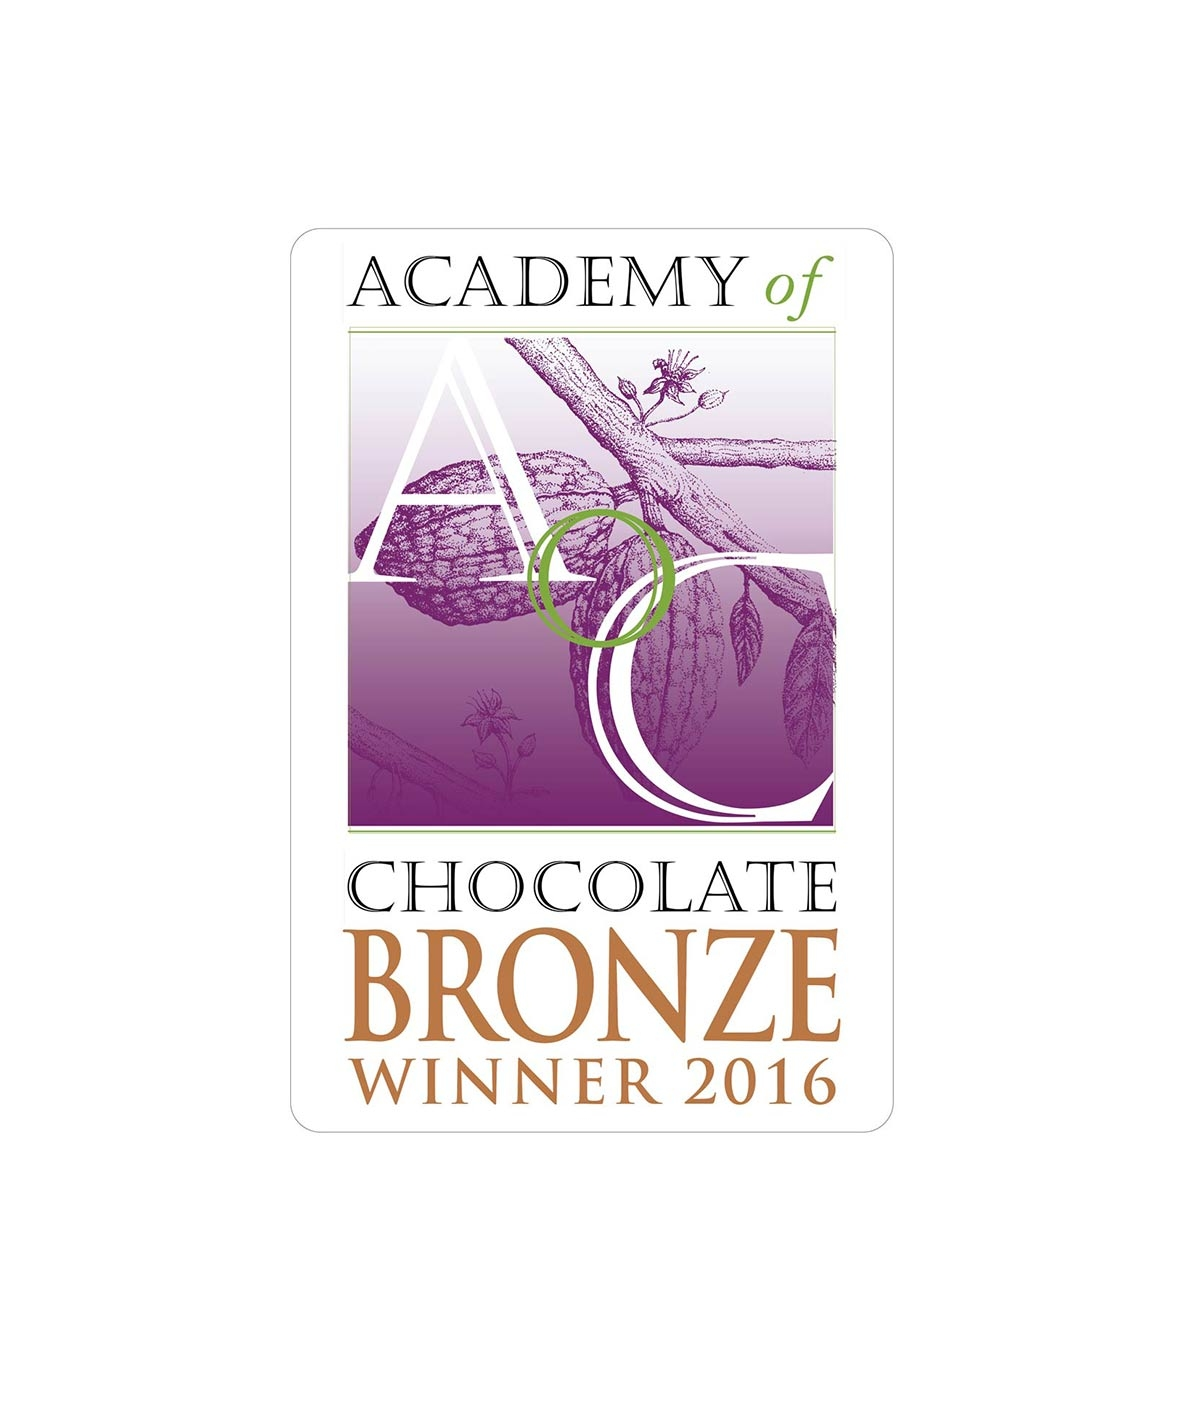 Academy of Chocolate Awards 2016 Wiskey